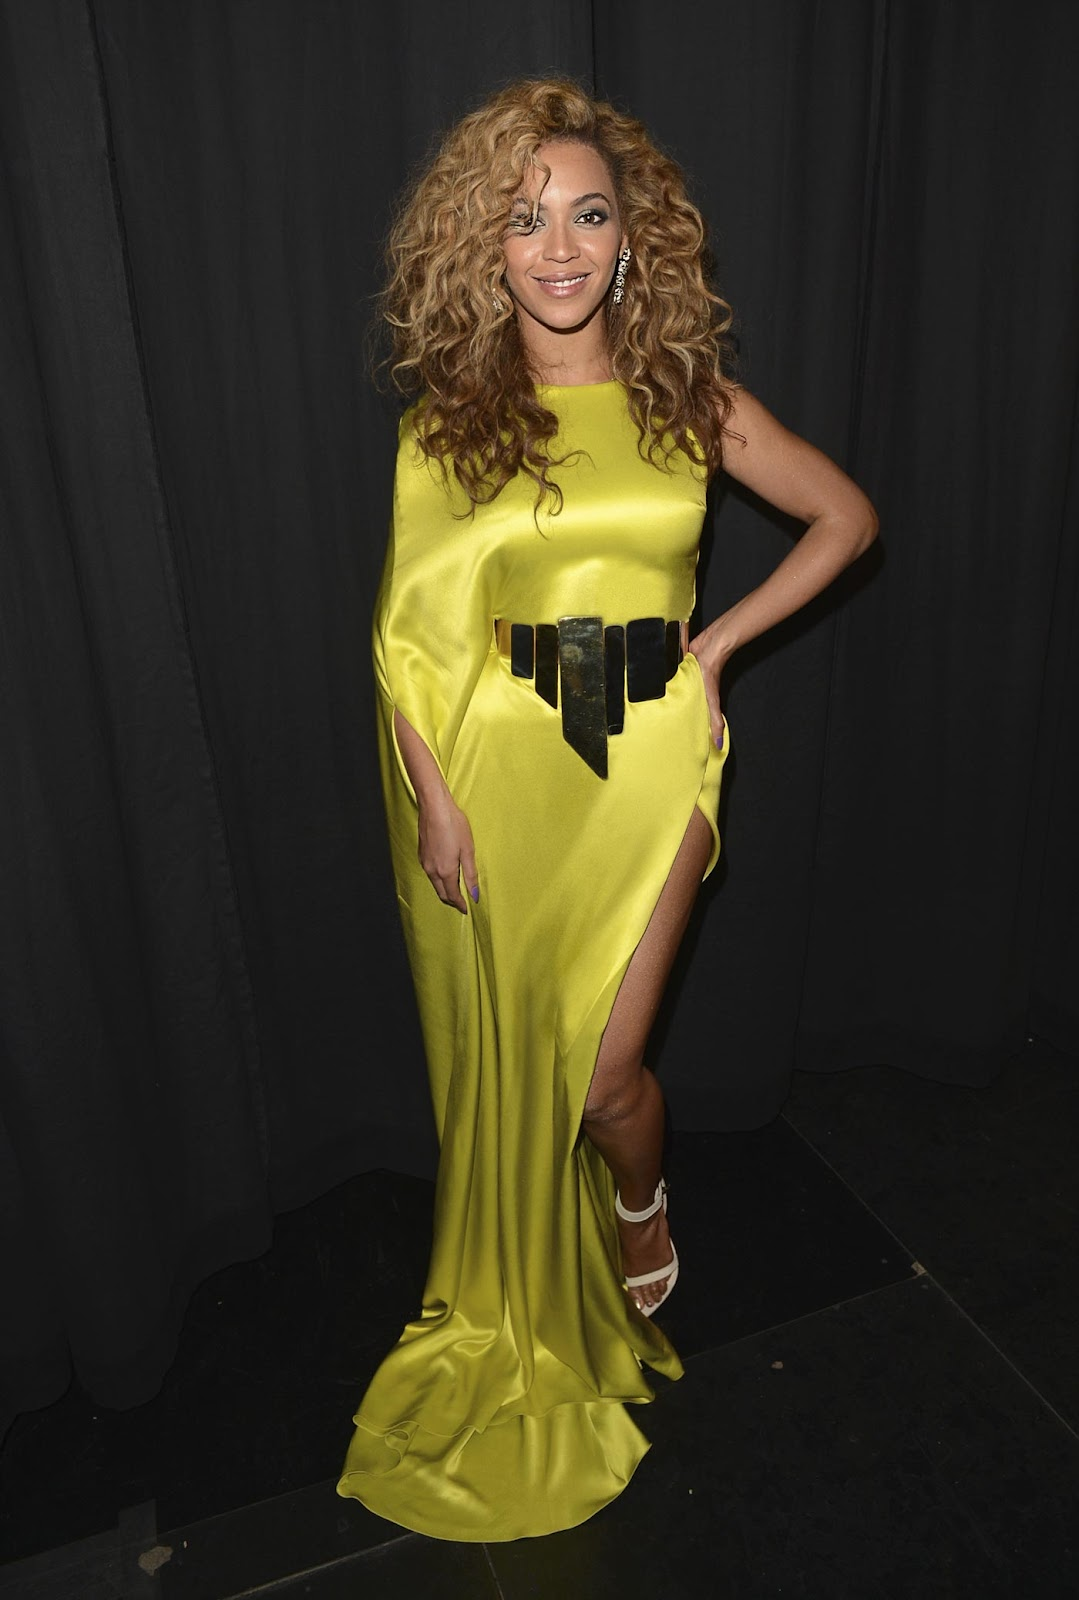 http://4.bp.blogspot.com/-BqQJPofN0Tw/T_YvpNTJBBI/AAAAAAAAOcQ/zzt6vc7aClI/s1600/beyonce-yellow-dress-bet_awards_2012.jpg